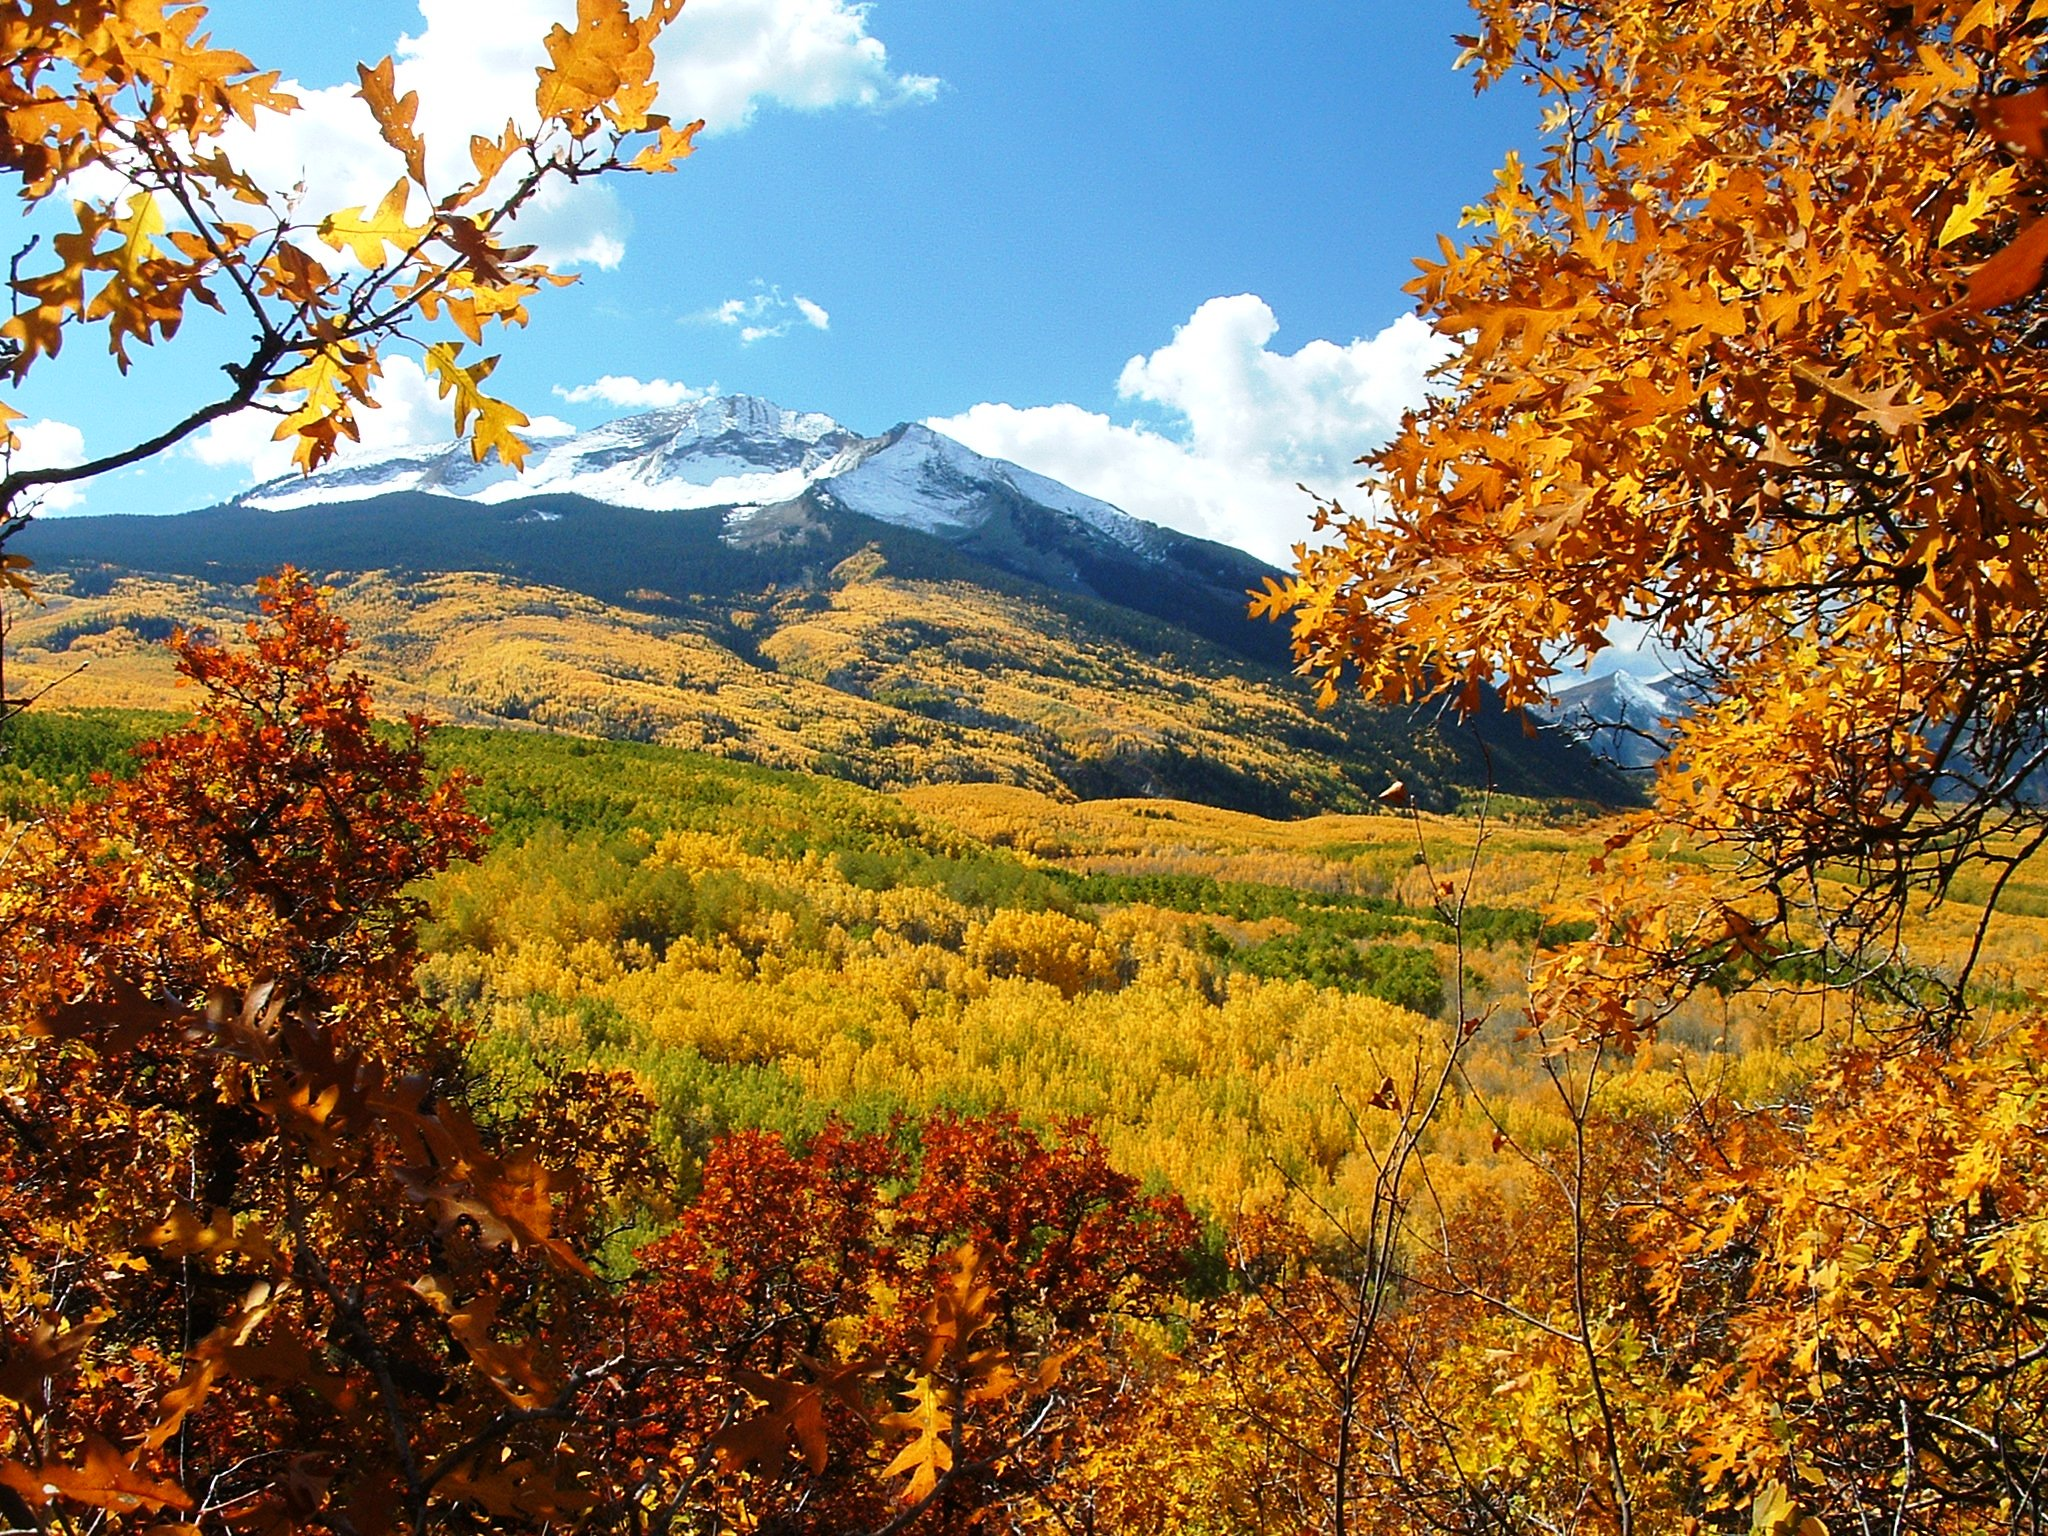 Come see beautiful fall foliage on Kebler Pass near Crested Butte in Colorado.